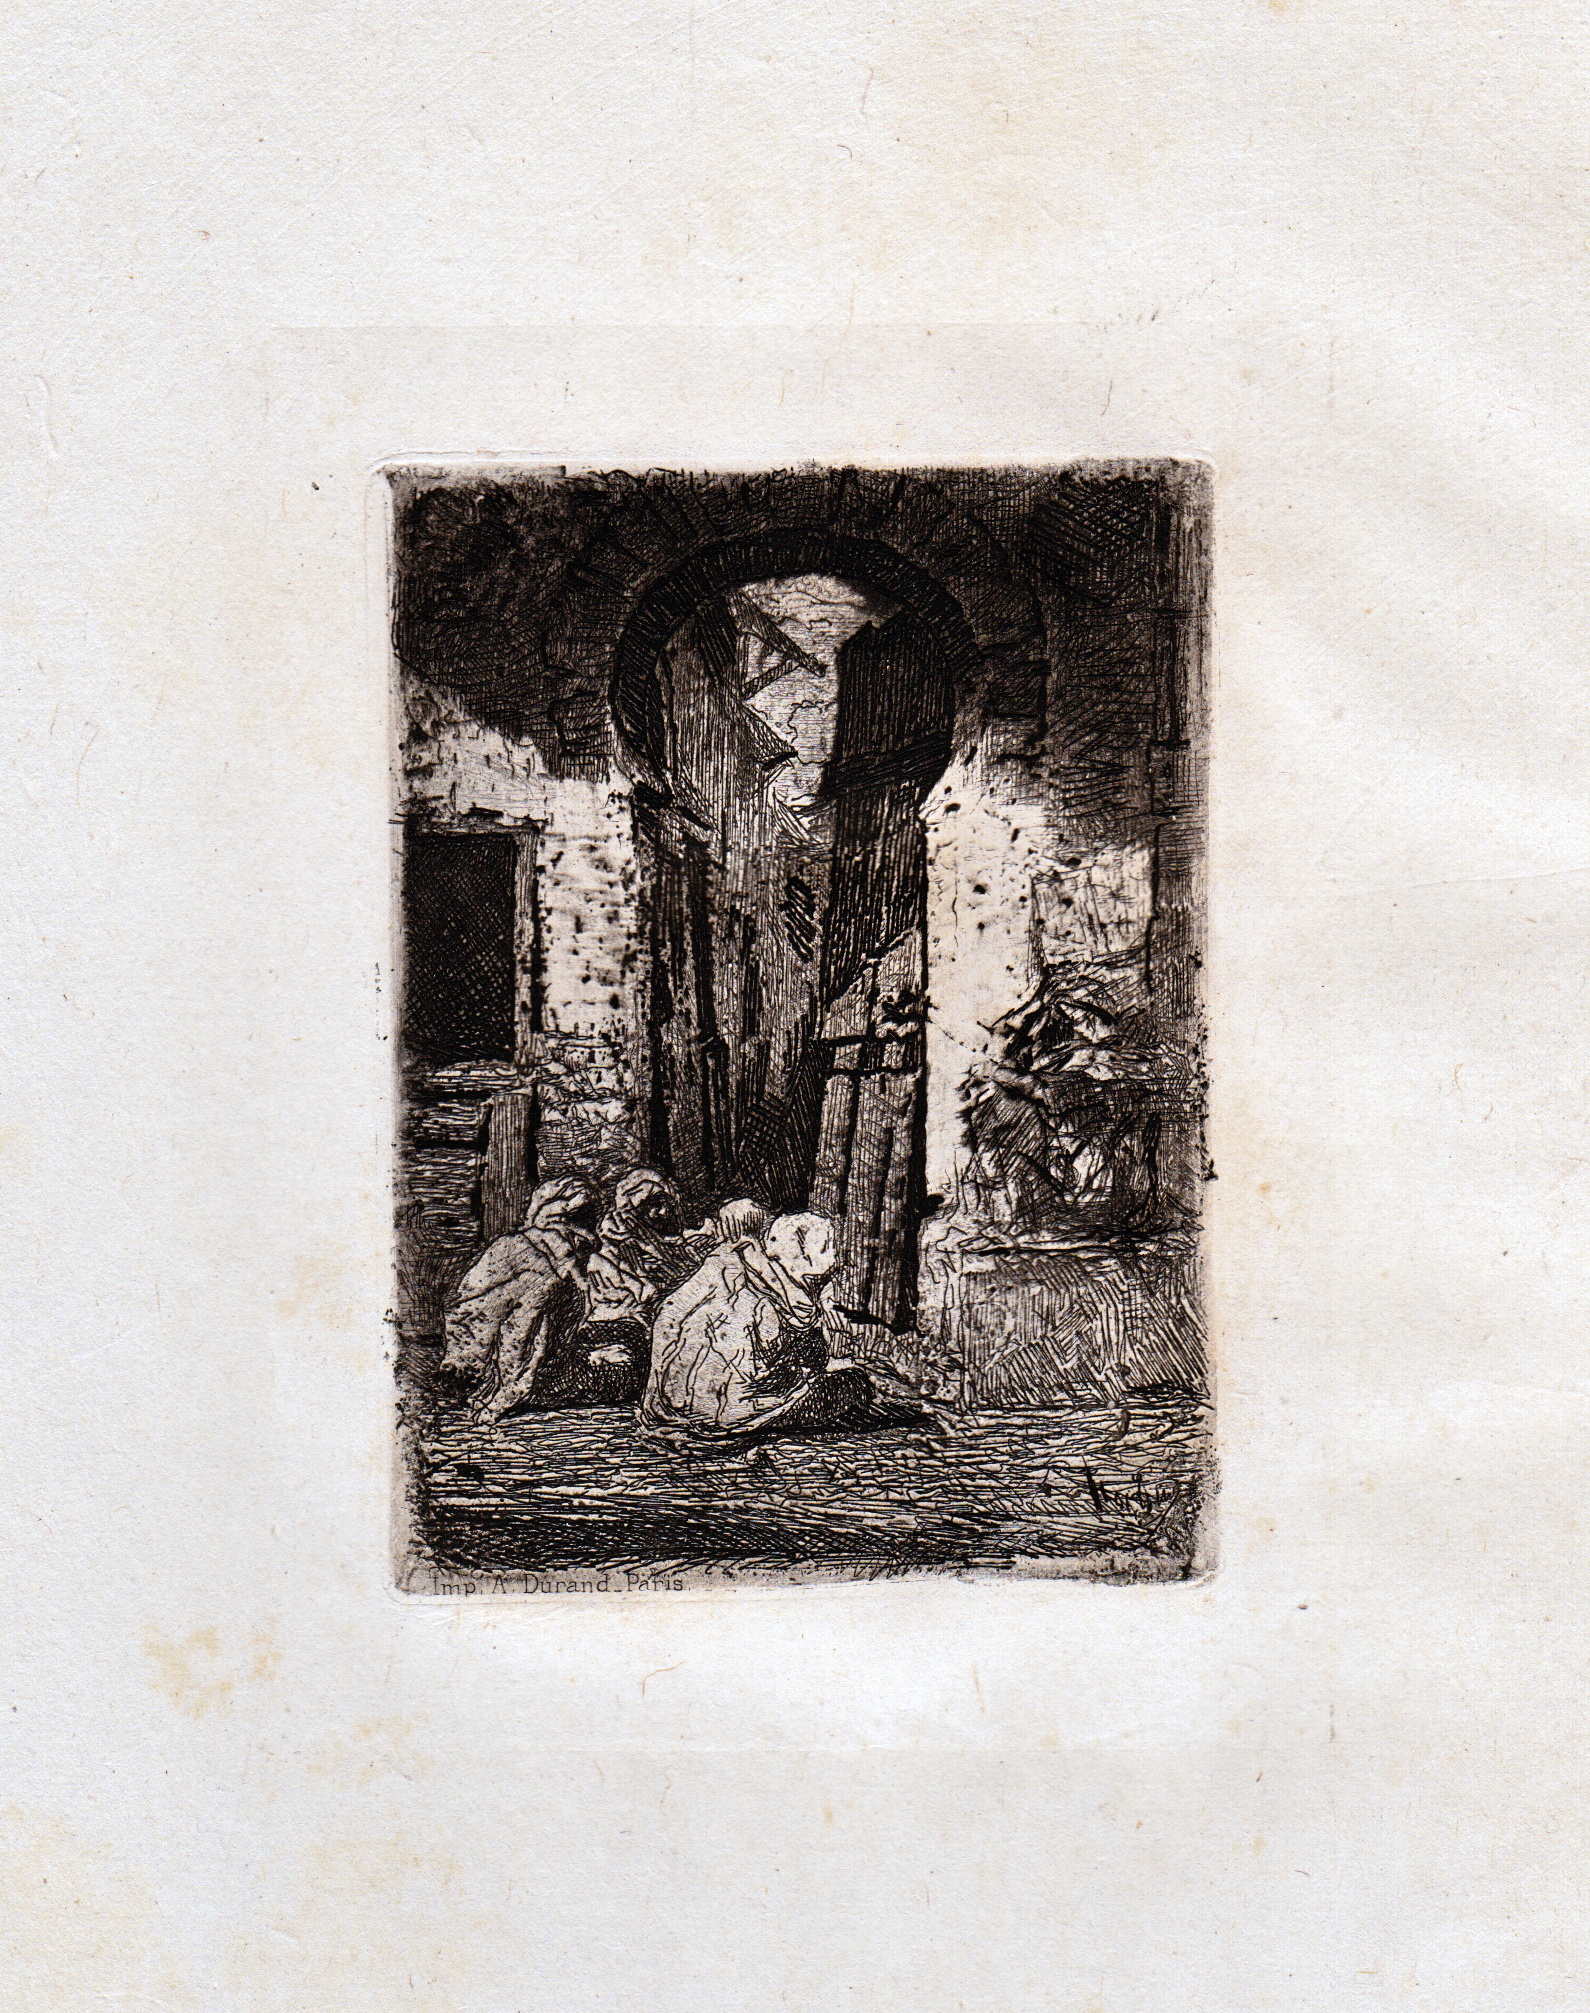 Fortuny, Tanger, Arabes Assis, etching